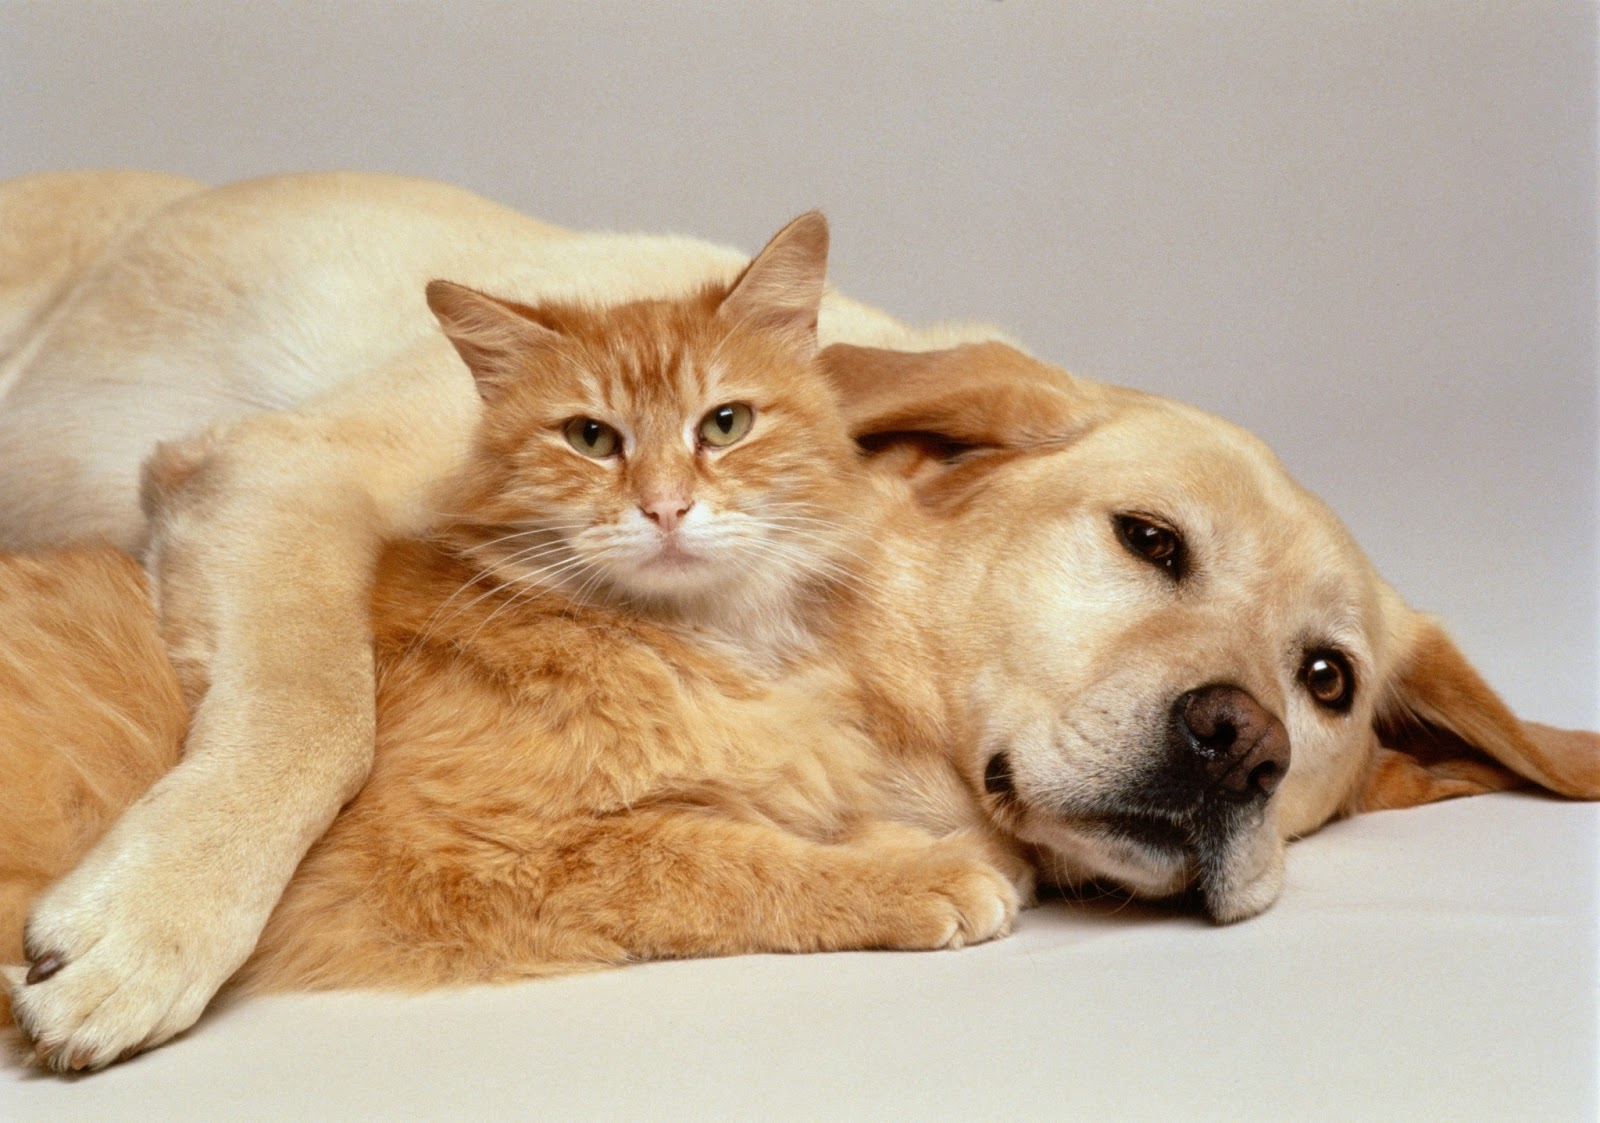 An image of dogs and cats